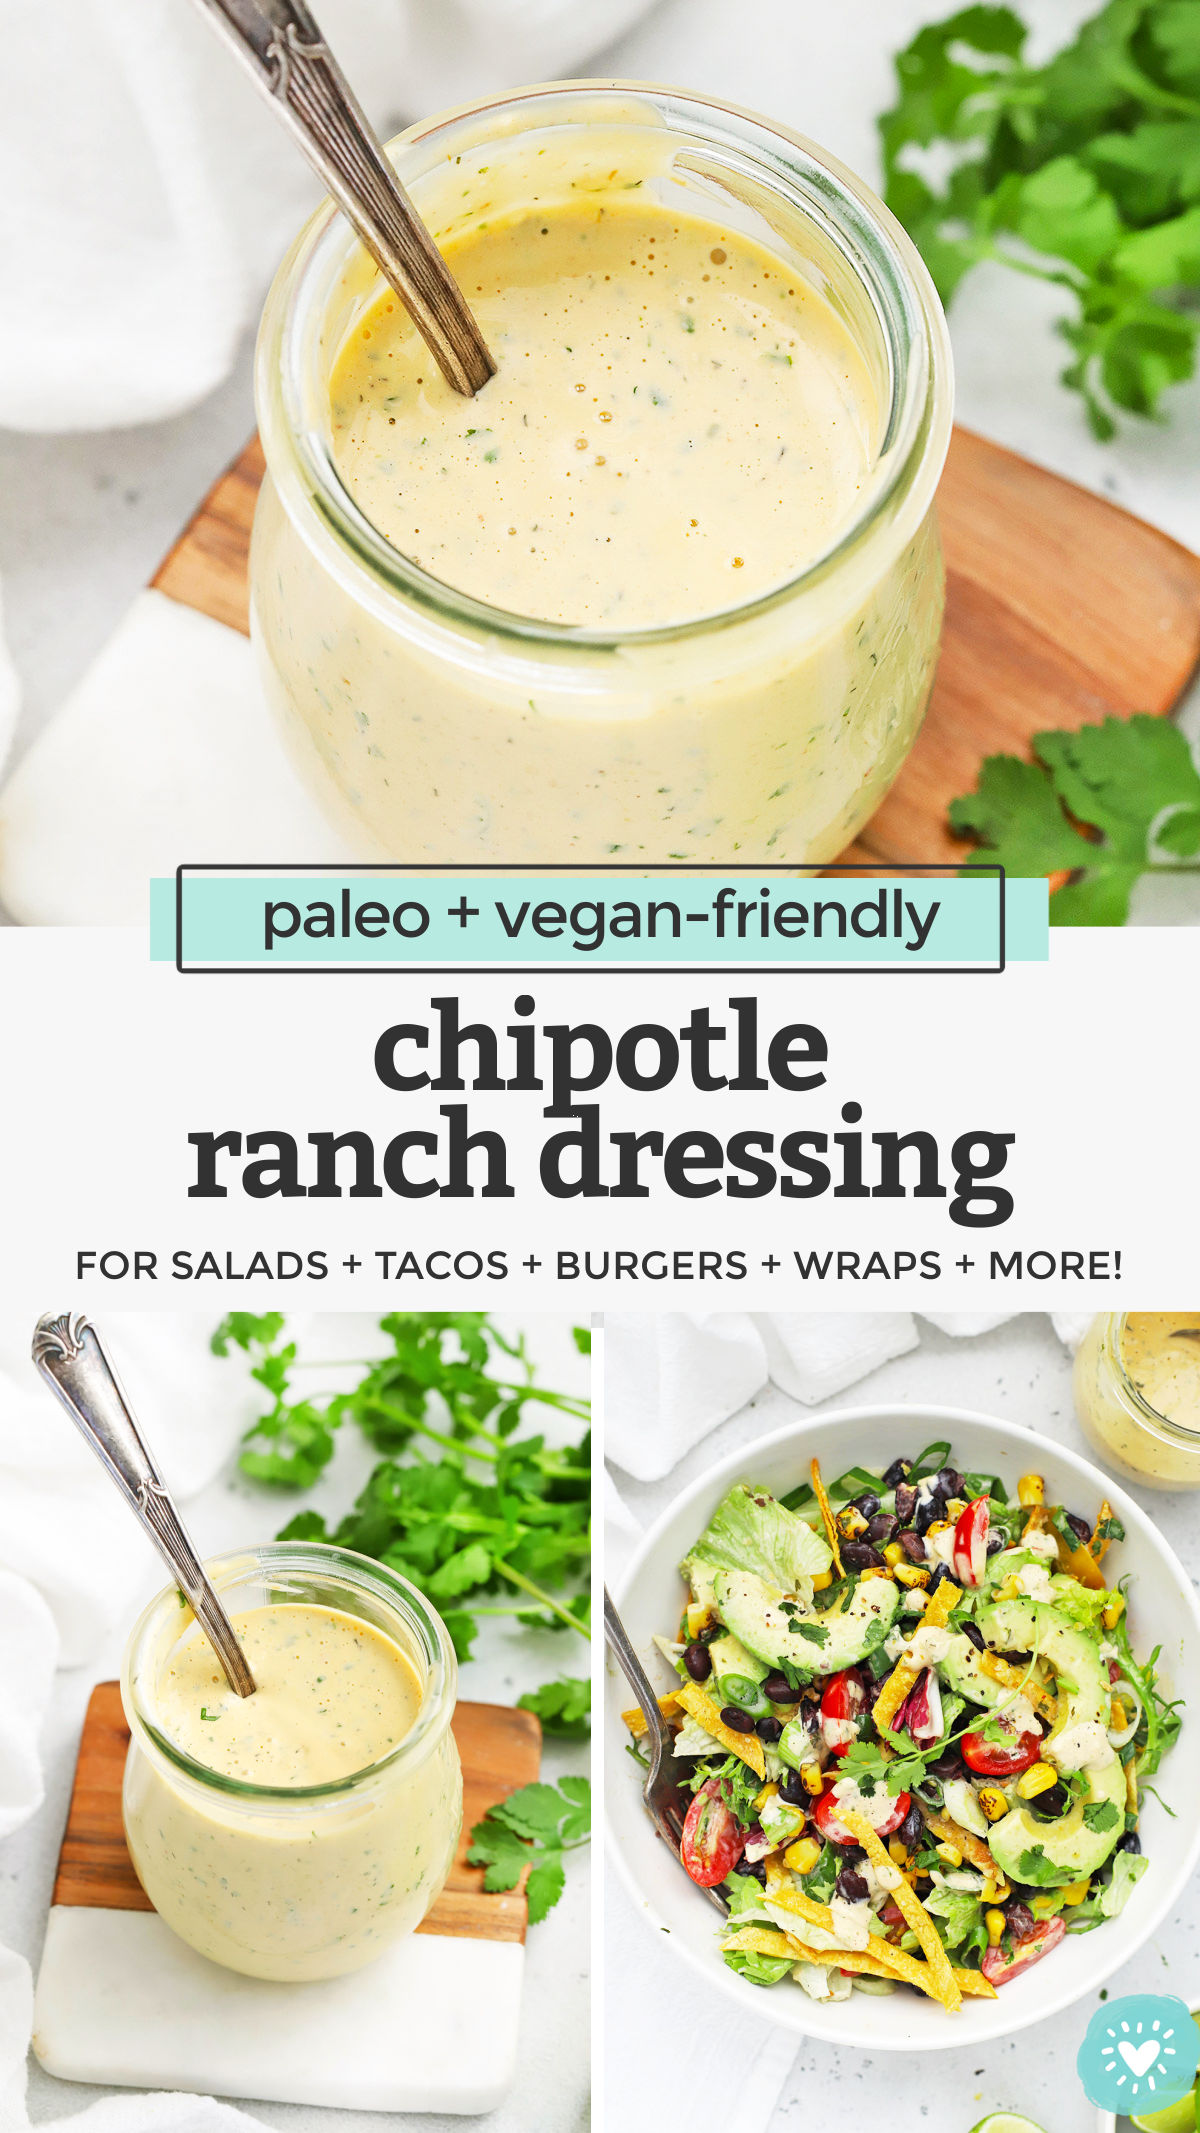 Chipotle Ranch Dressing or Dip - This smoky, slightly spicy ranch dressing is a delicious way to add some kick to your meals. Don't miss our big list of ways to use it! (Dairy-Free, Gluten-Free, Paleo + Vegan Friendly) // Dairy-Free Chipotle Ranch // Vegan Chipotle Ranch // Paleo Chipotle Ranch #ranch #paleo #vegan #dip